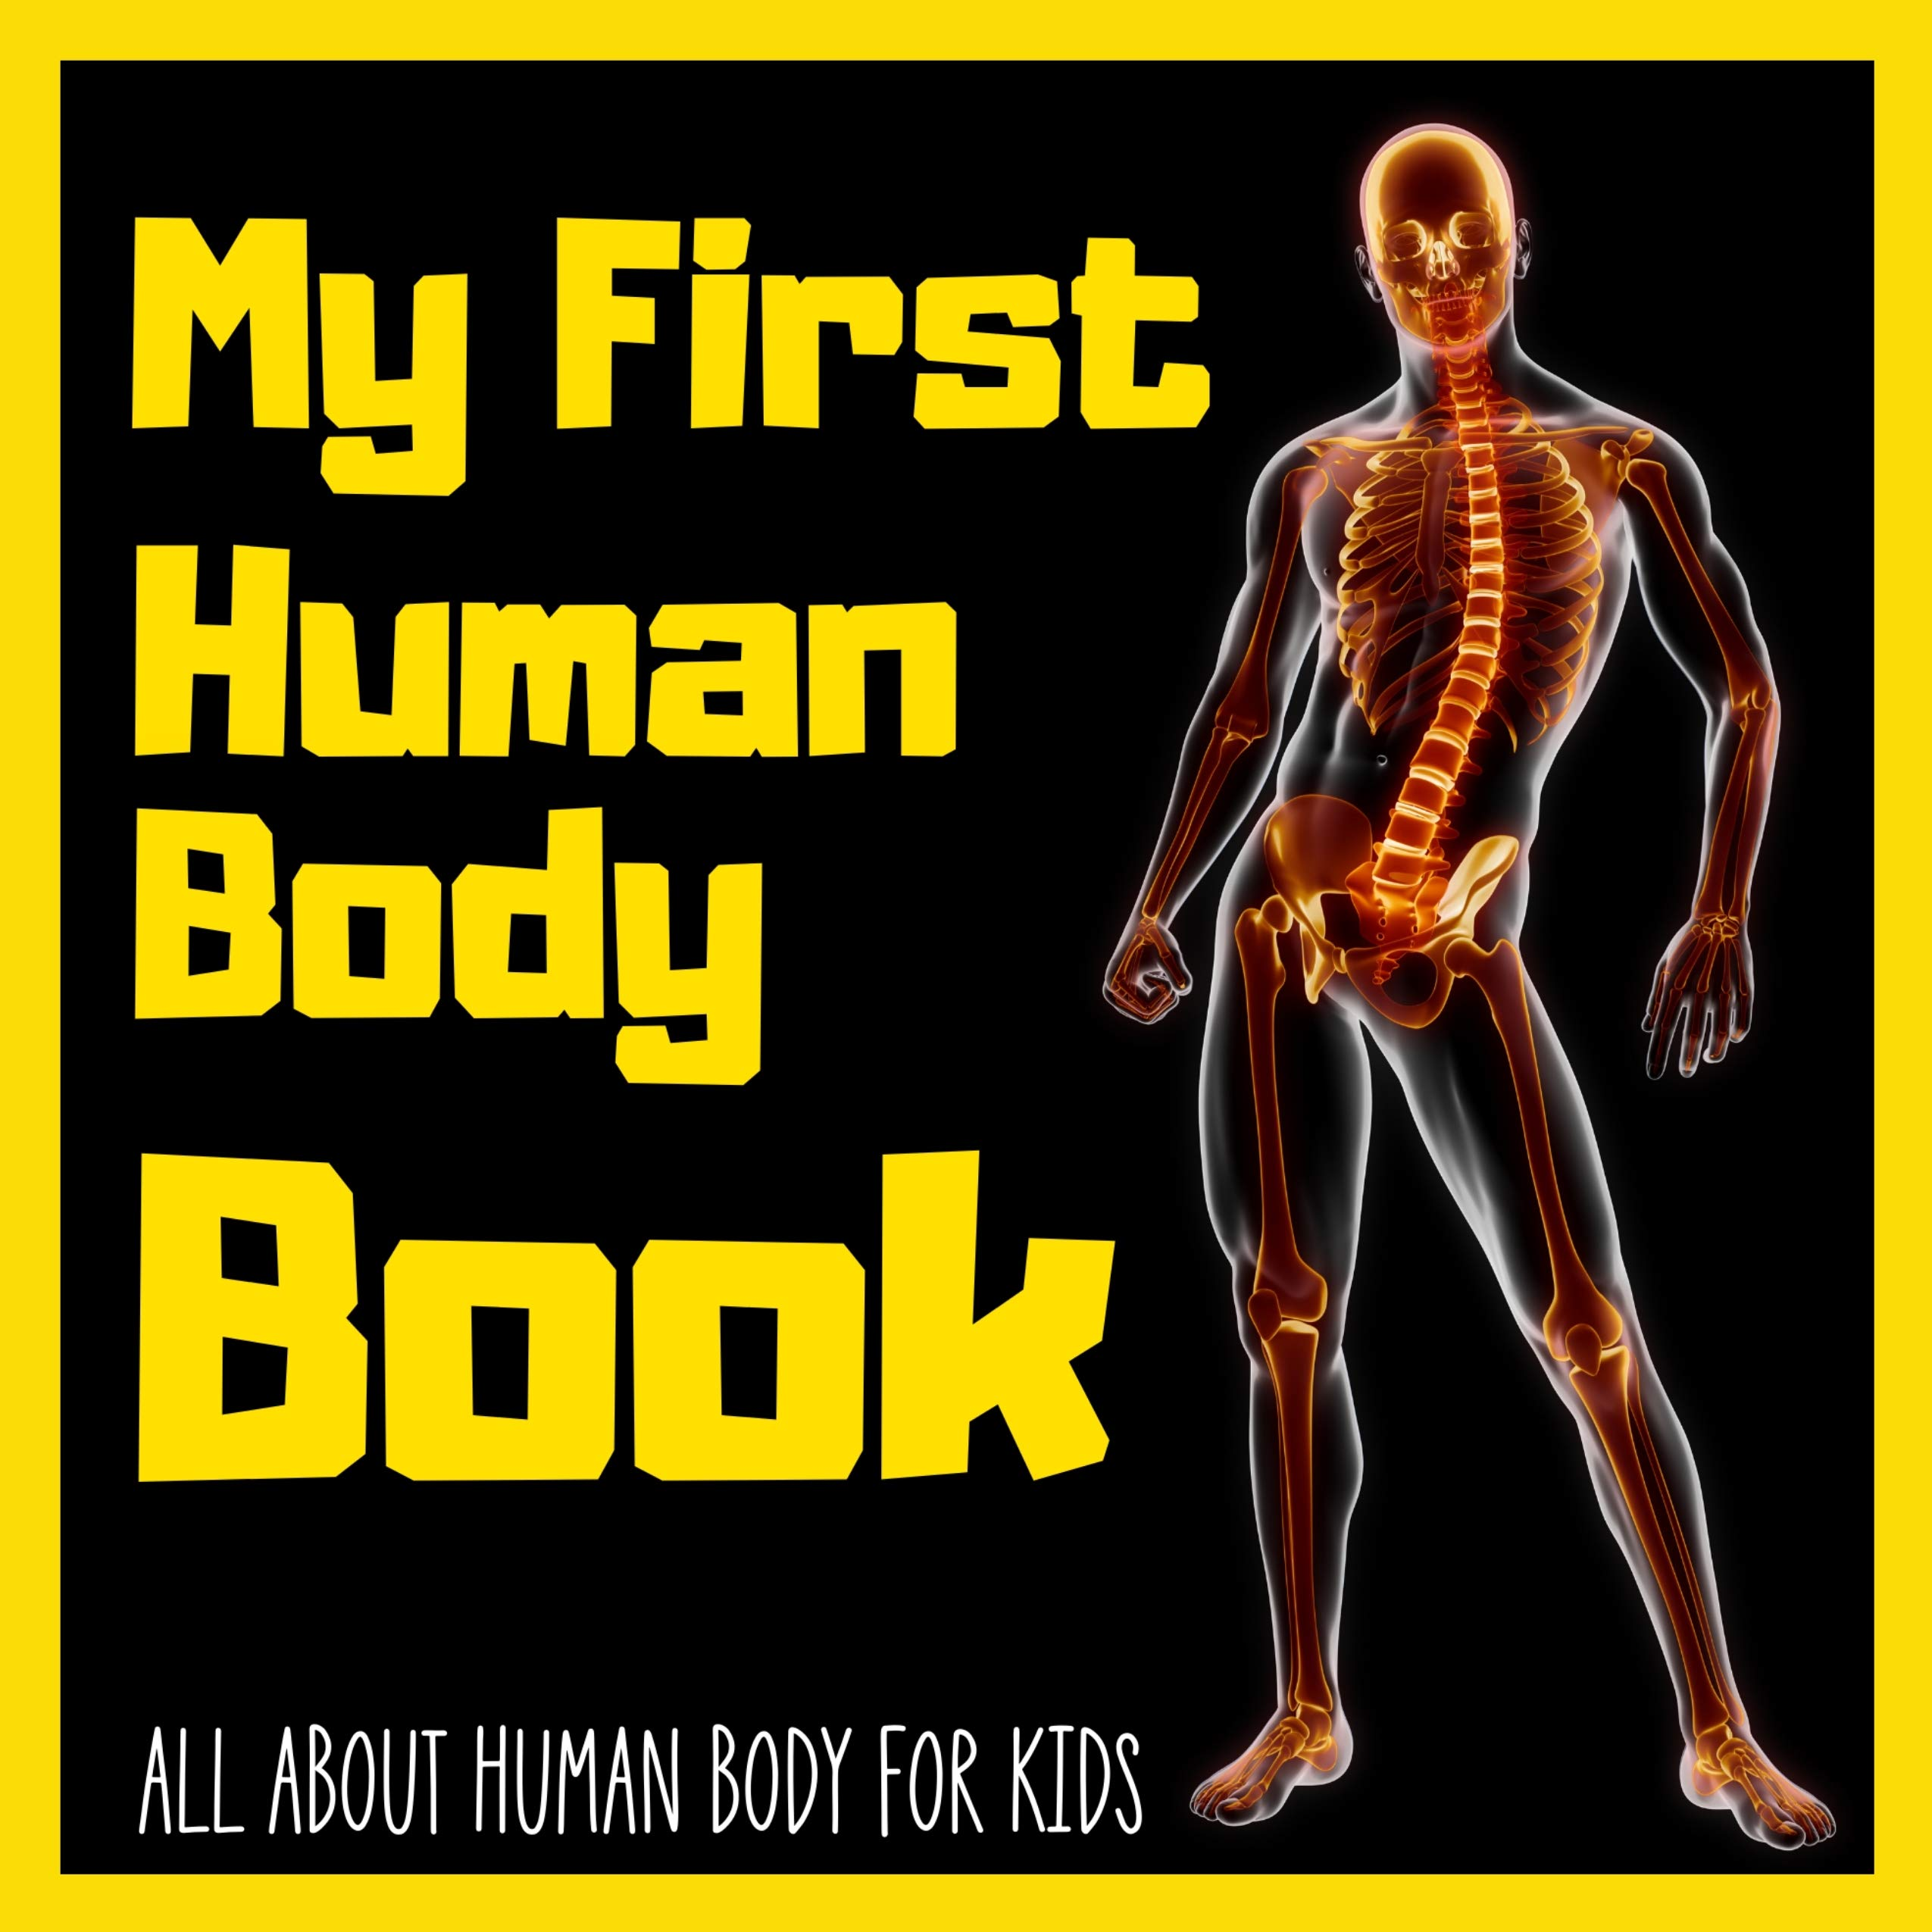 My First Human Body Book All About Human Body Parts For Kids By Michael Blackmore